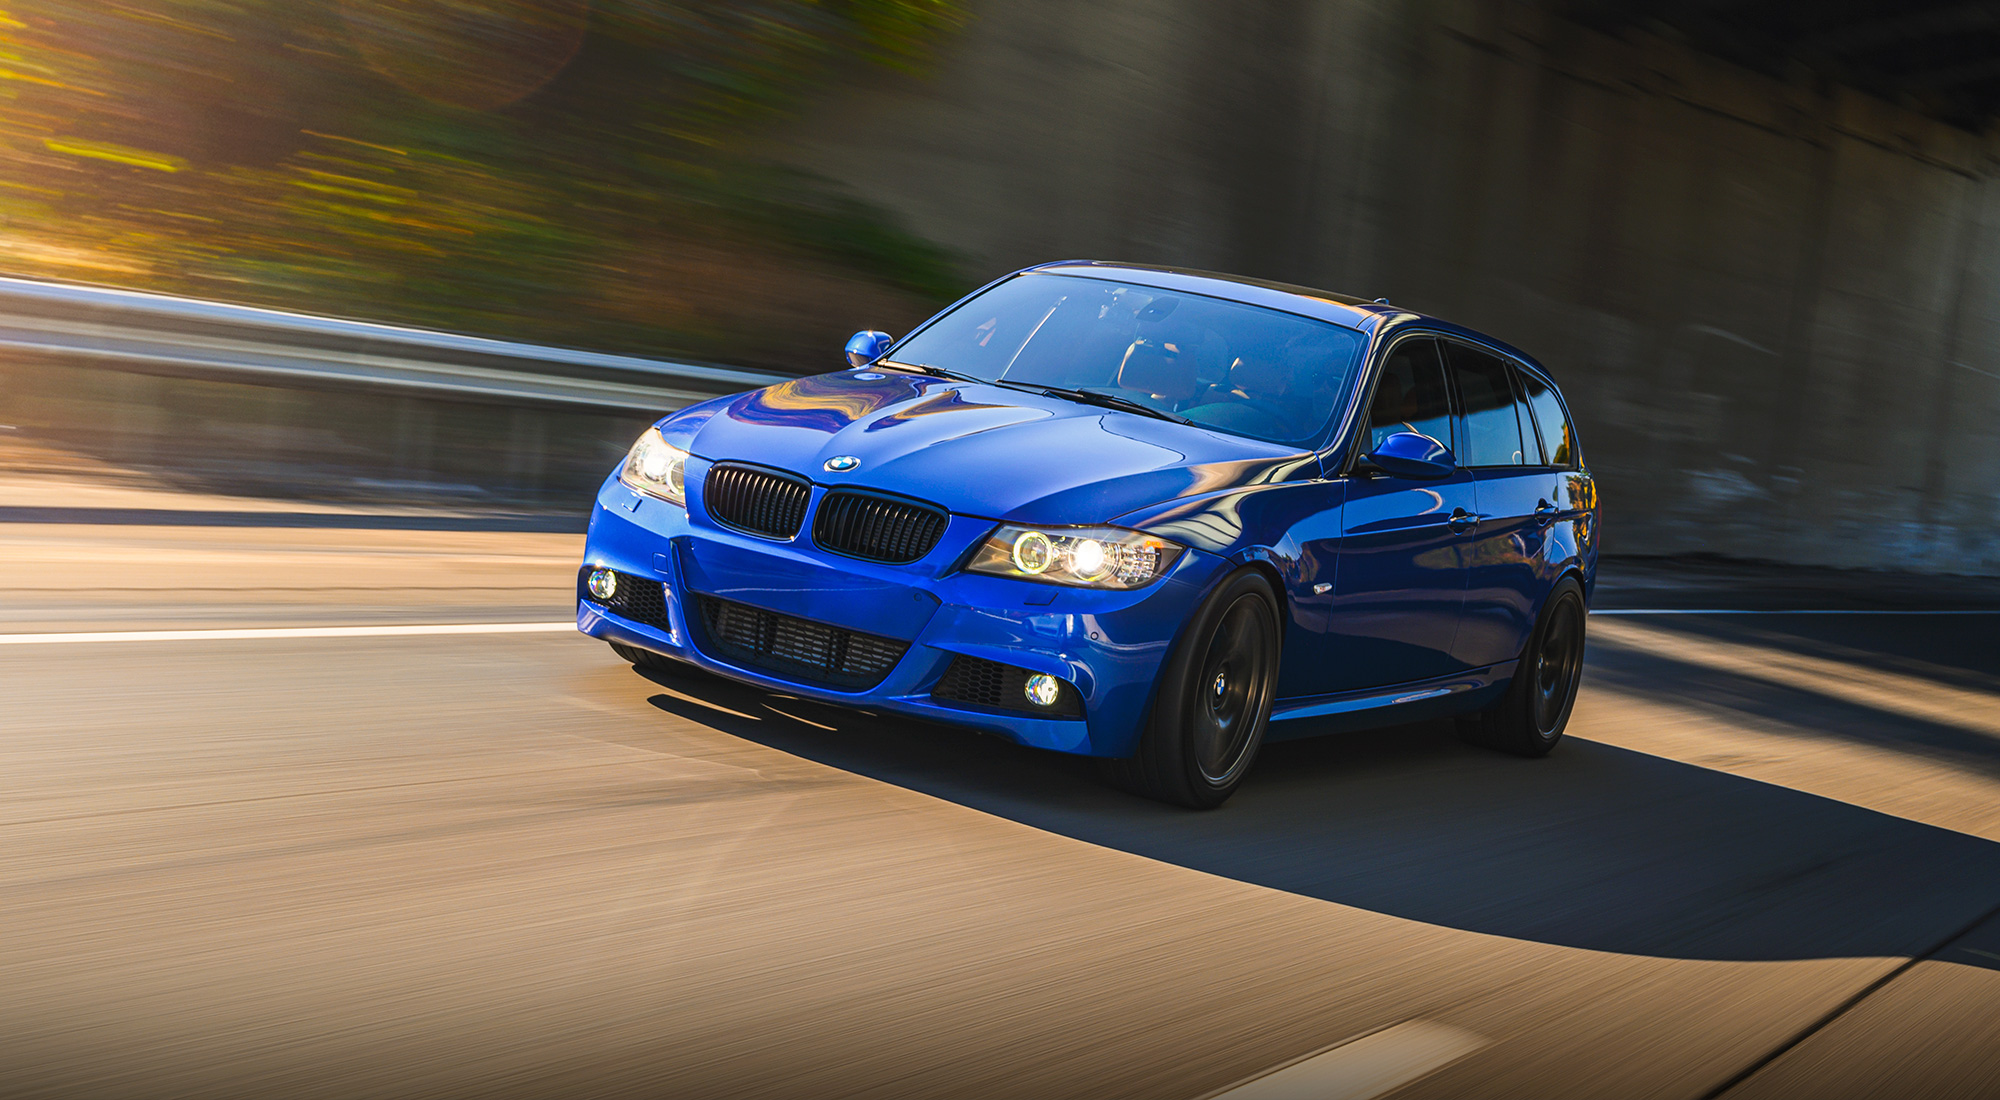 The 700 lb-ft of torque BMW 3 Series Wagon